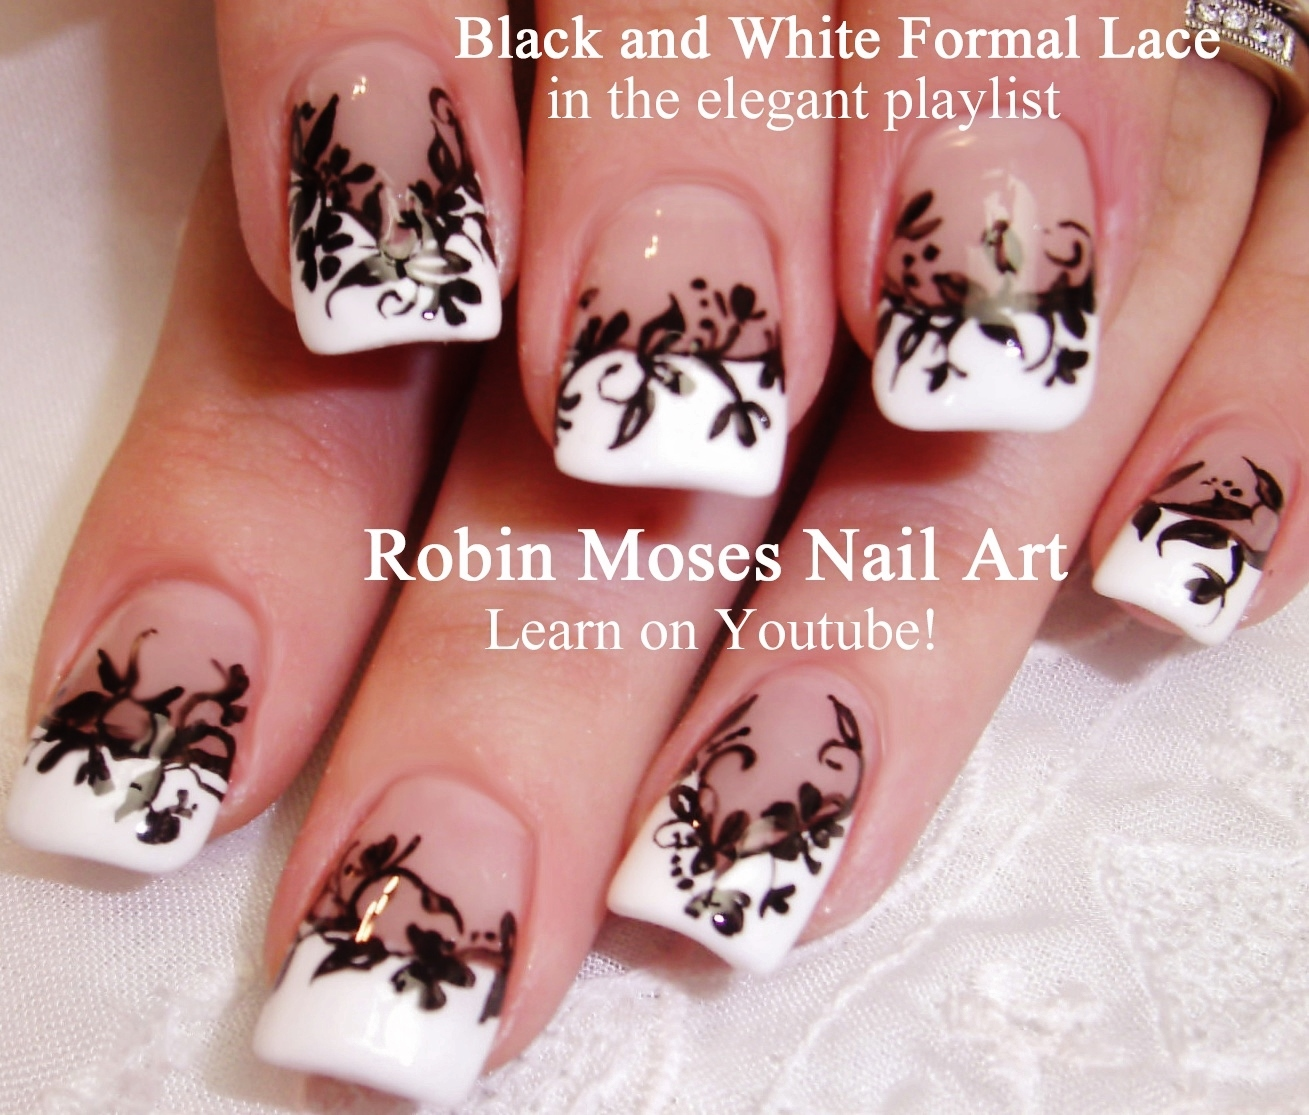 Robin moses nail art elegant nail art ideas tutorial playlist elegant nail art playlist easy formal nail designs nail tutorials for wedding nail art prom nails and ideas for beginners to advanced artists baditri Gallery